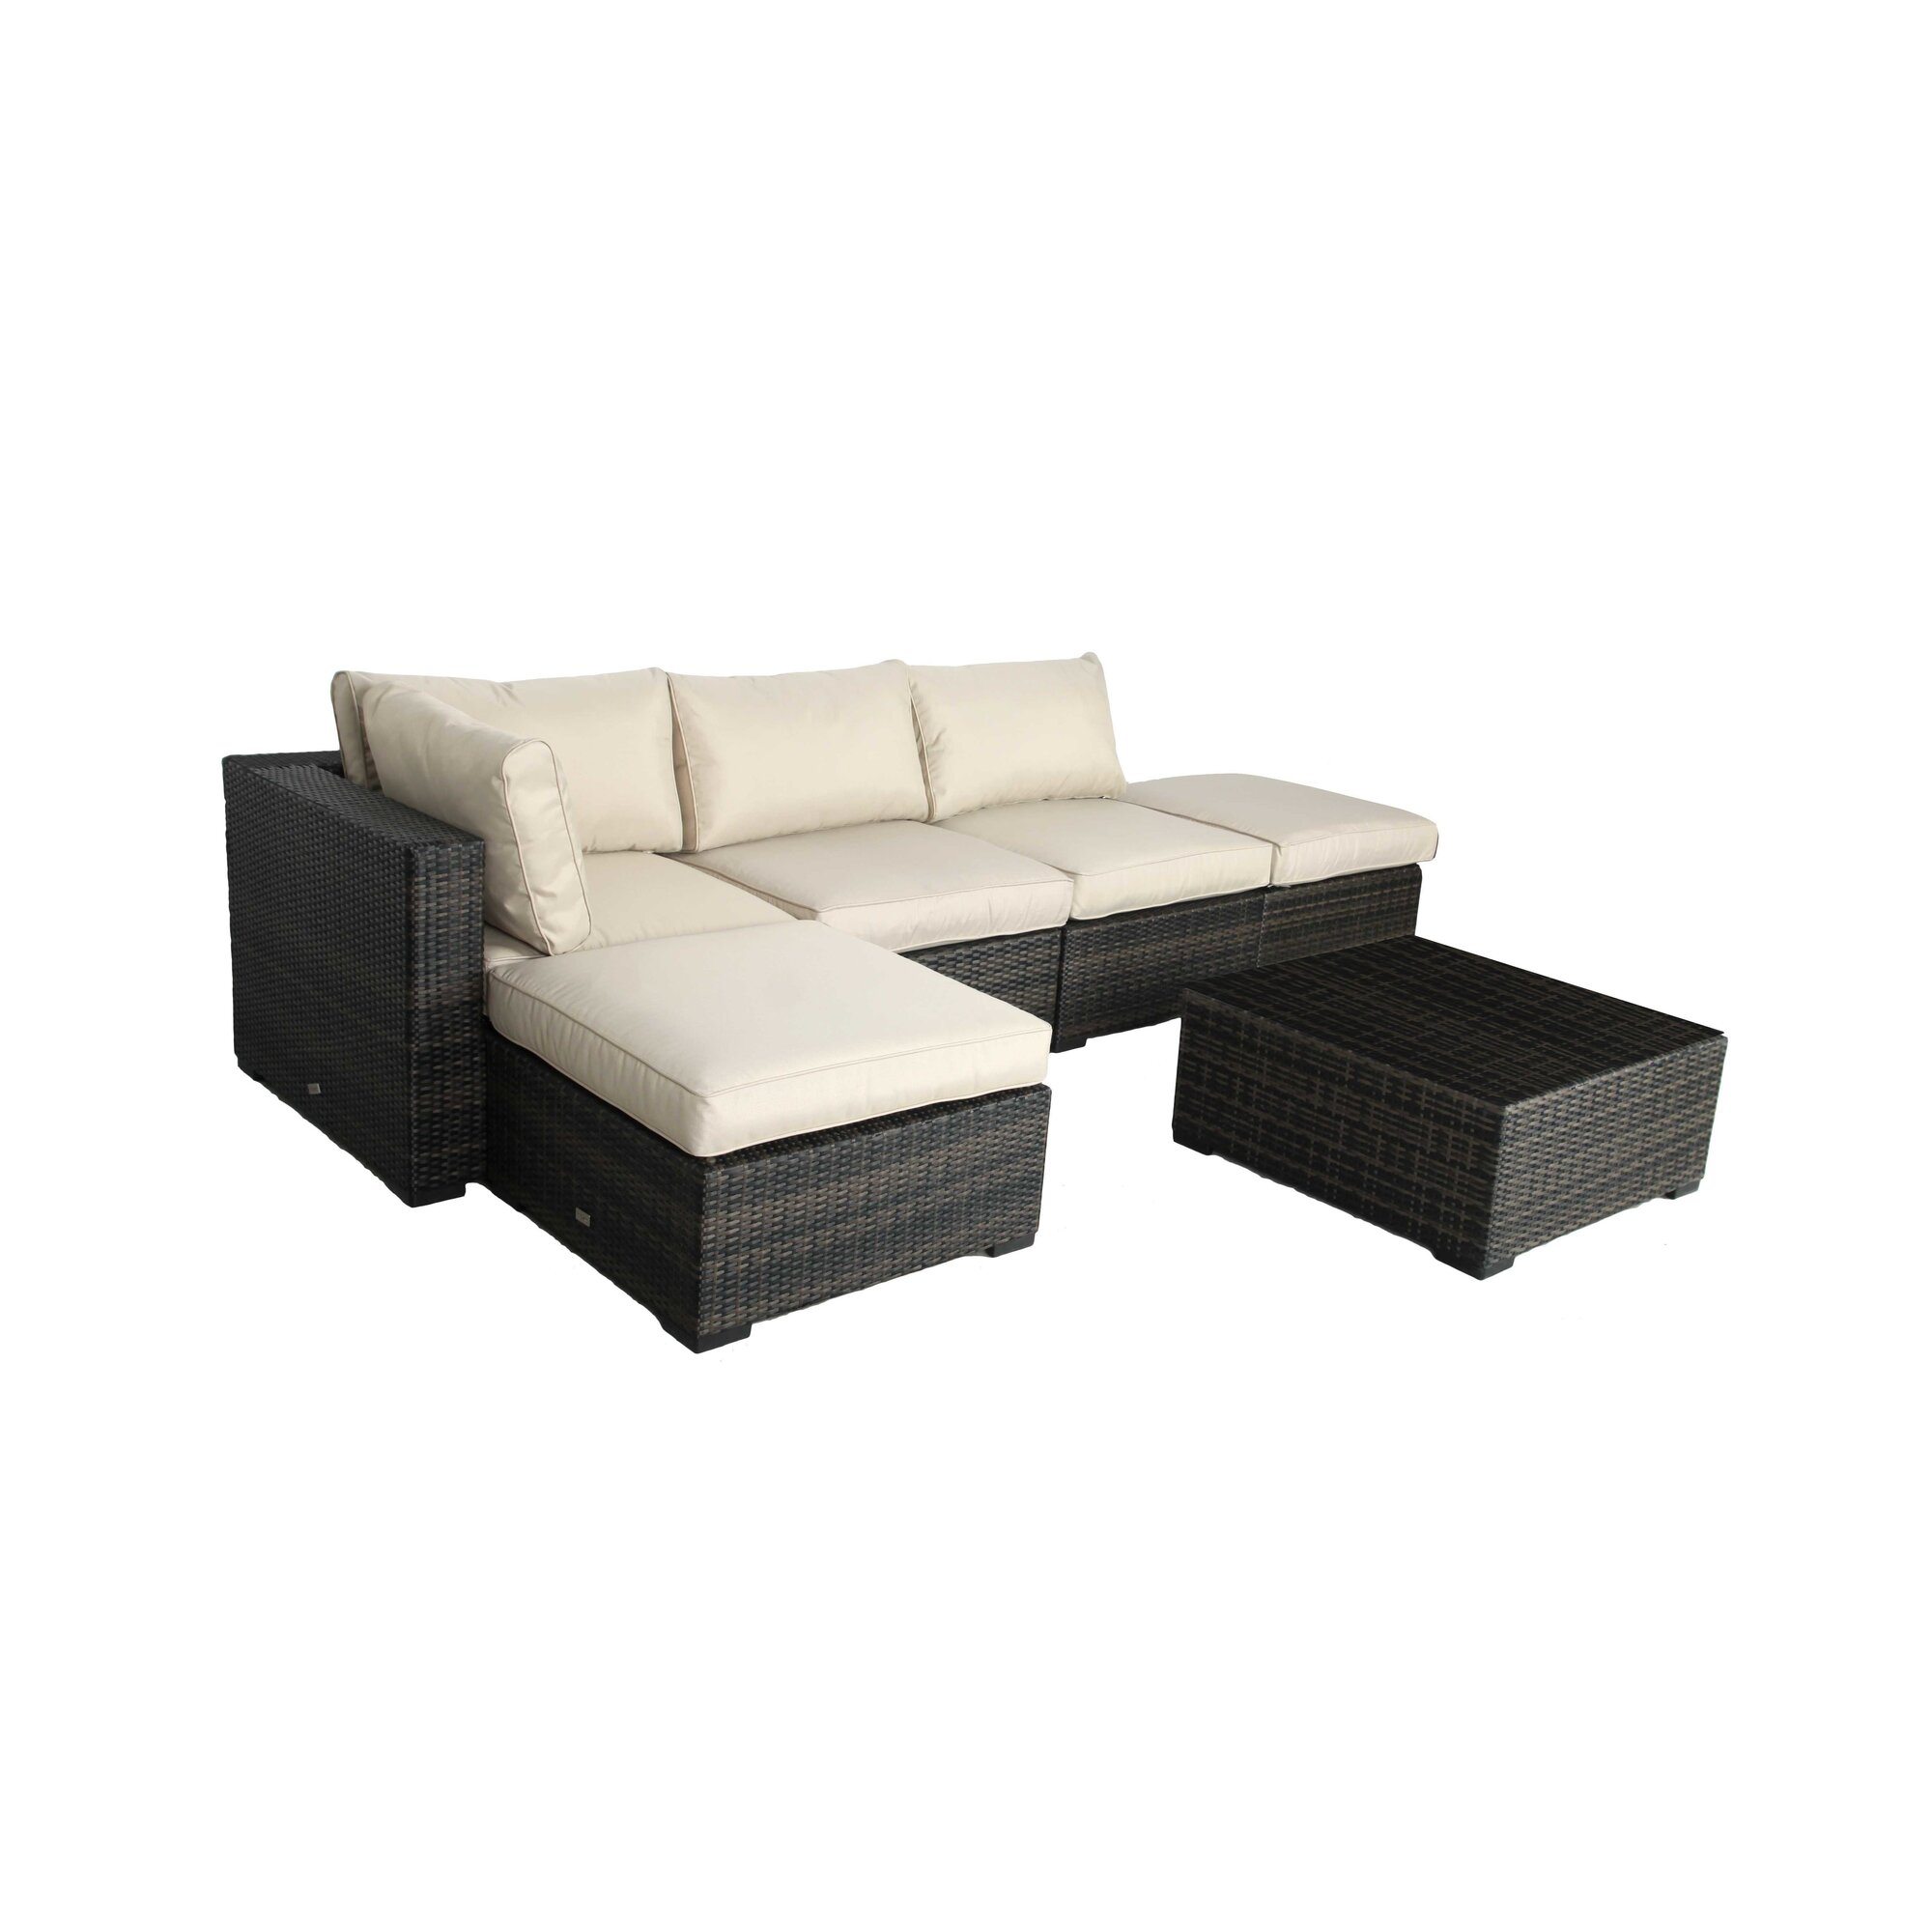 Brayden Studio Lara 6 Piece Sectional Seating Group with Cushions